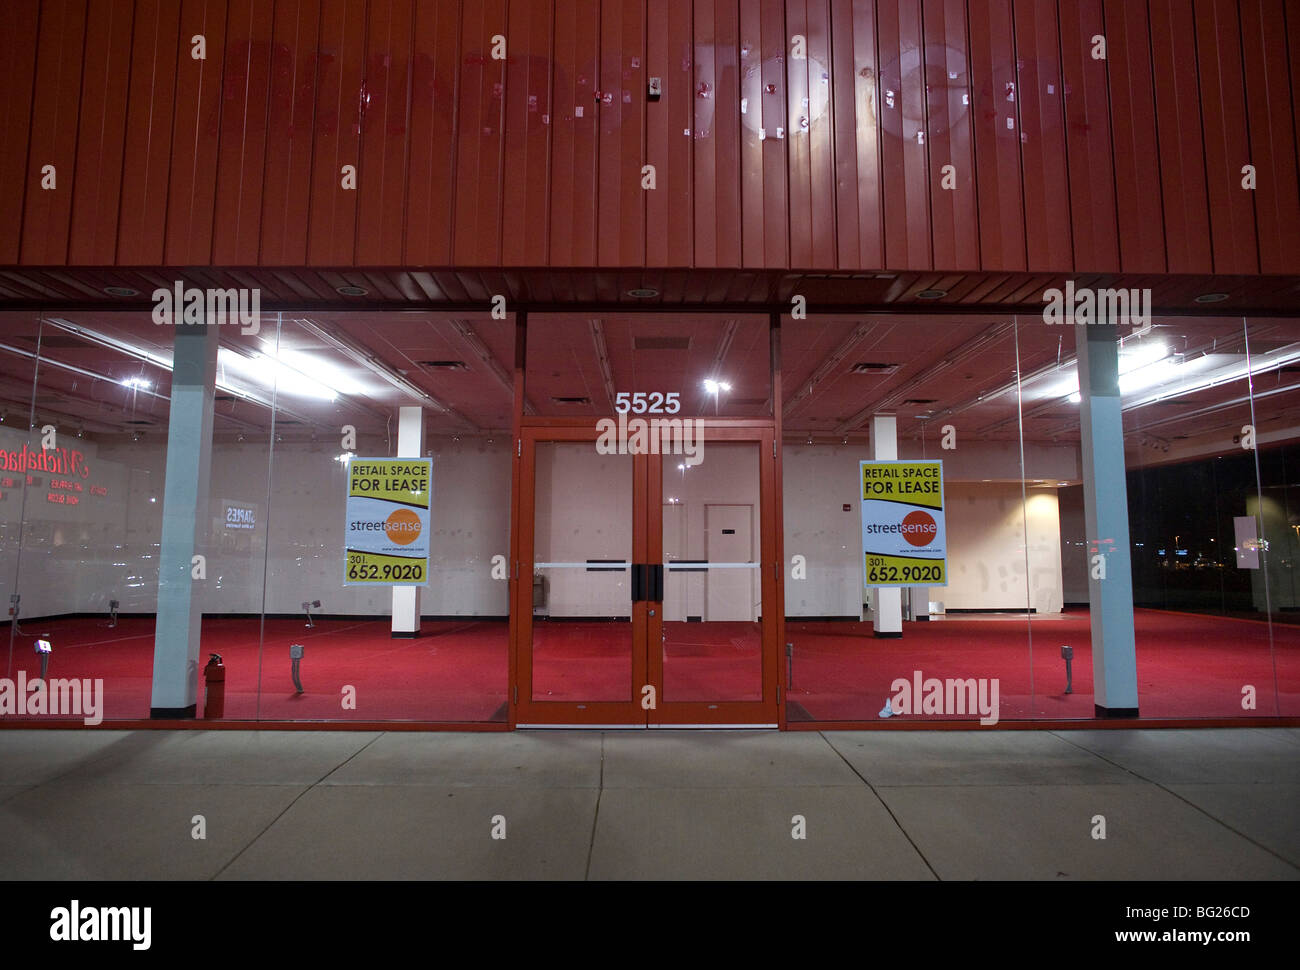 A vacant retail store front in a shopping center.  - Stock Image